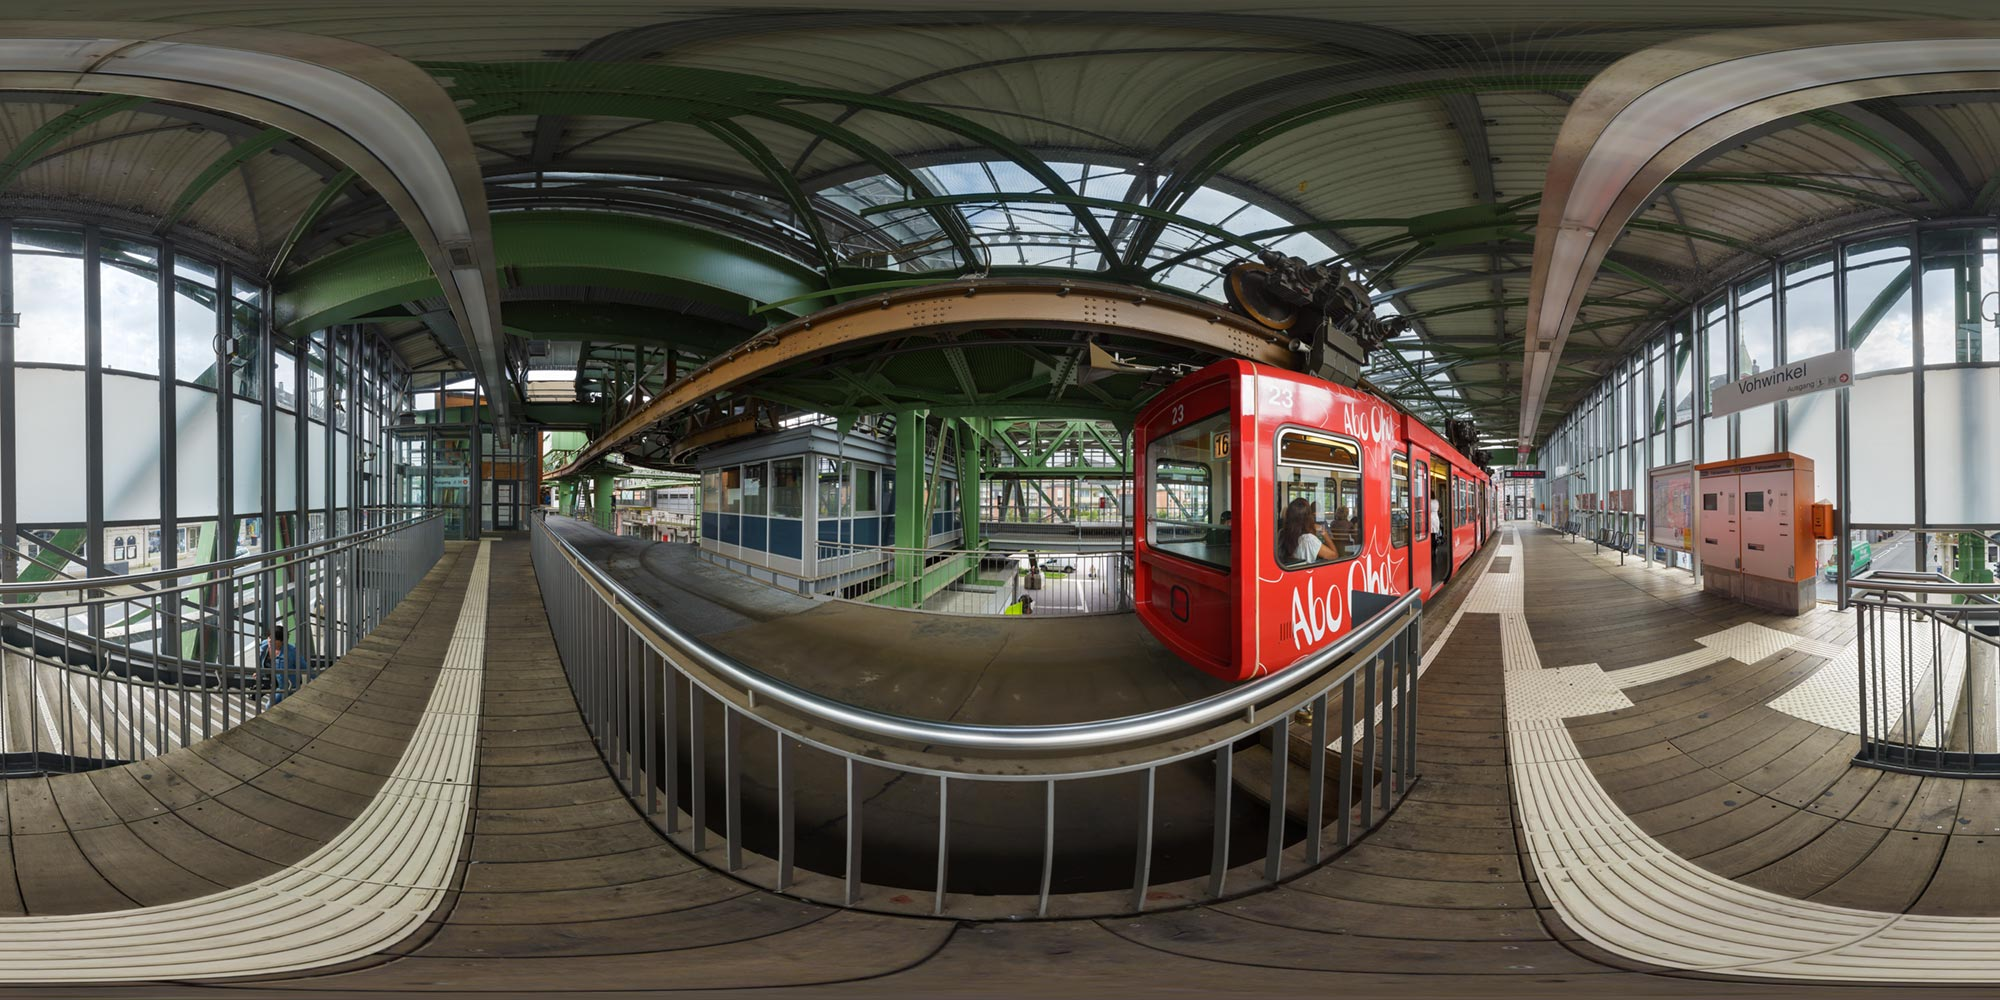 Panorama  Wuppertal - Station Vohwinkel